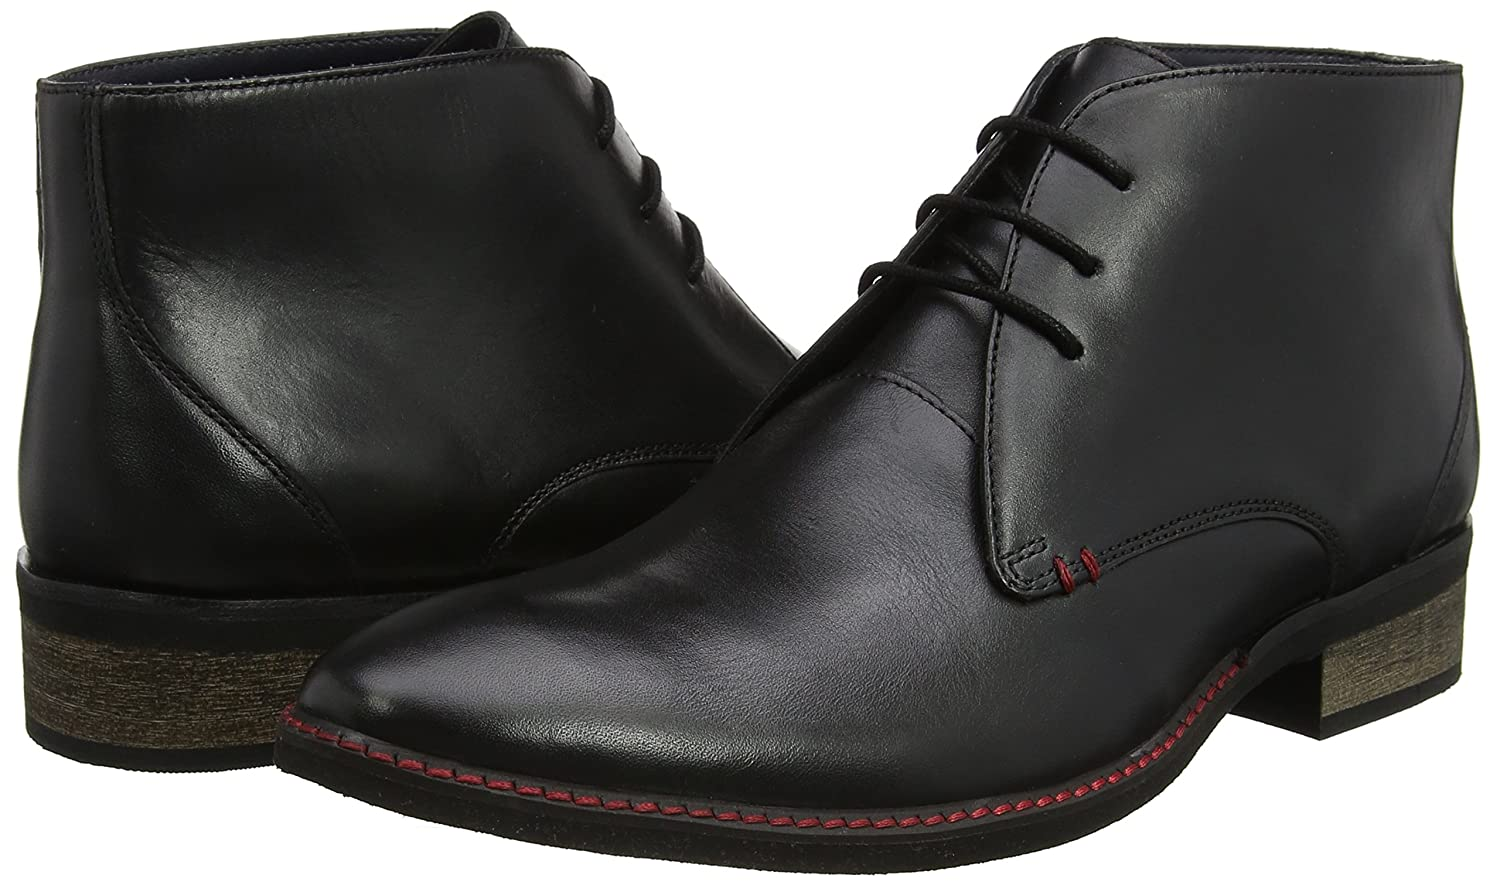 Lotus Harlington, Stivali Uomo, Nero (Black Leather Blk Lth